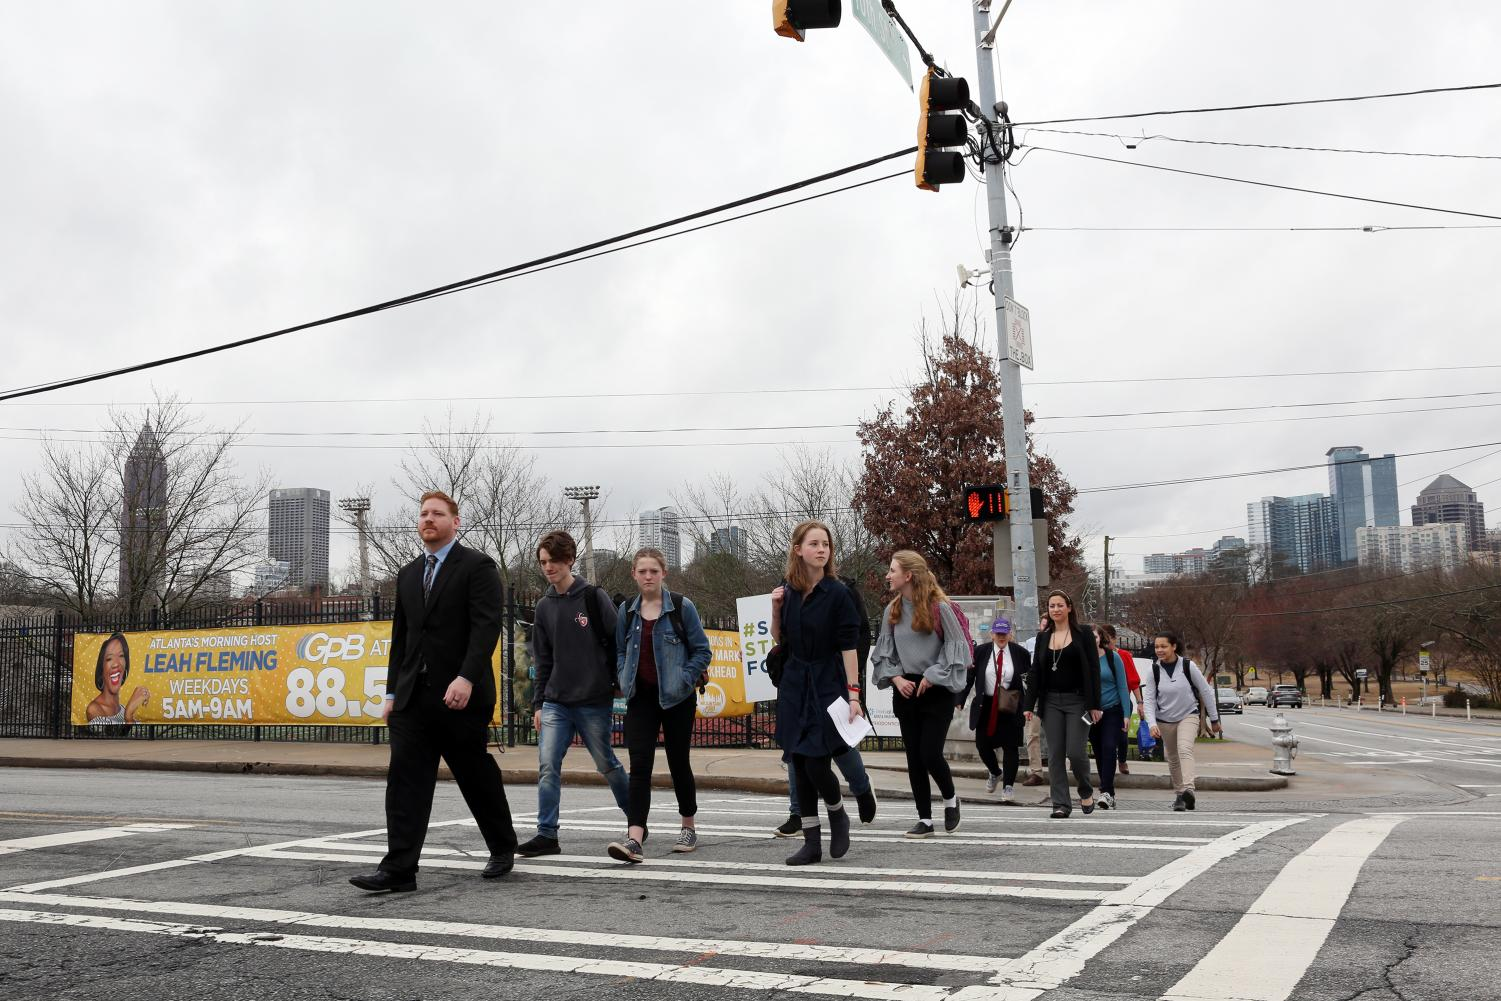 ORIGIN STORY: Thomas Hyneman and Grady Pedestrian Safety Coalition members cross 10th Street to visit a memorial for Hyneman's daughter, Alexia, who was killed at the intersection in February 2016.